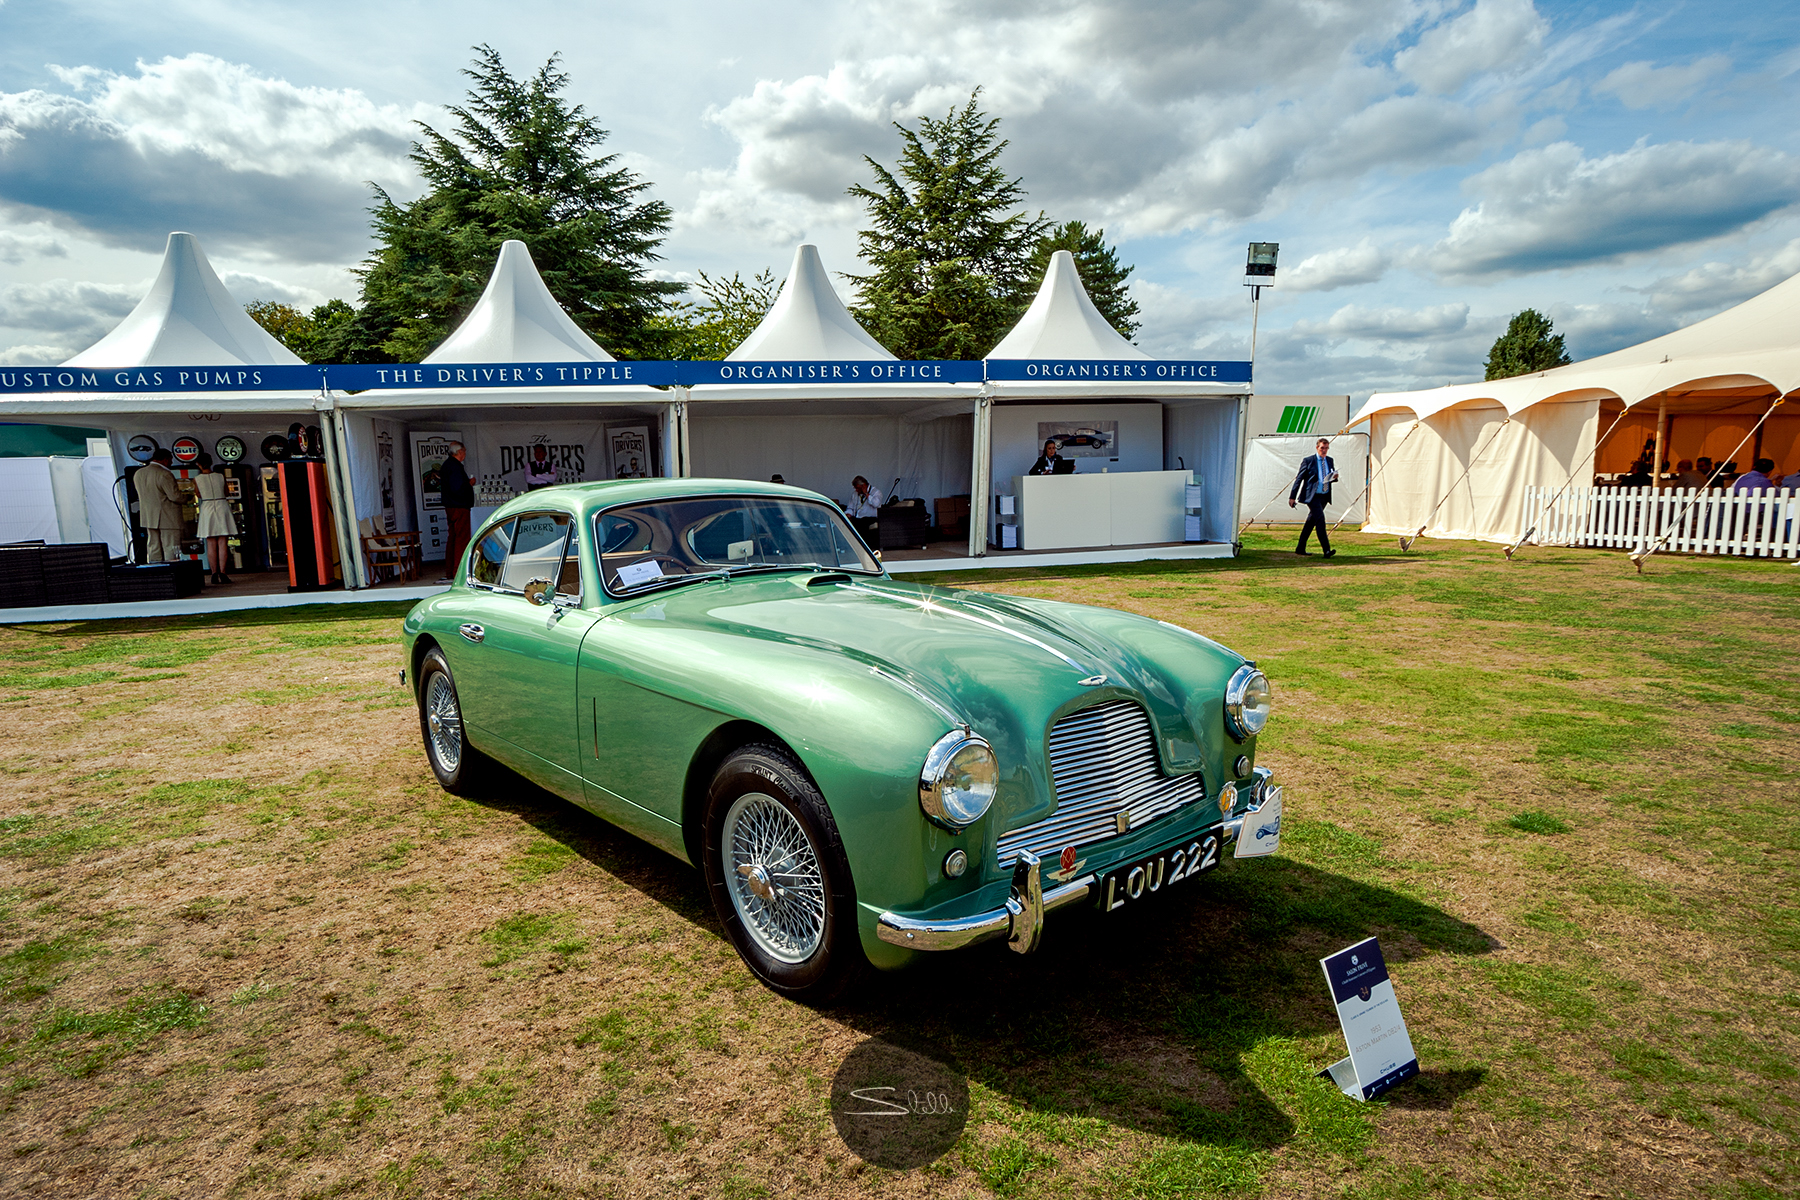 Stella Scordellis Salon Prive 2018 53 Watermarked.jpg